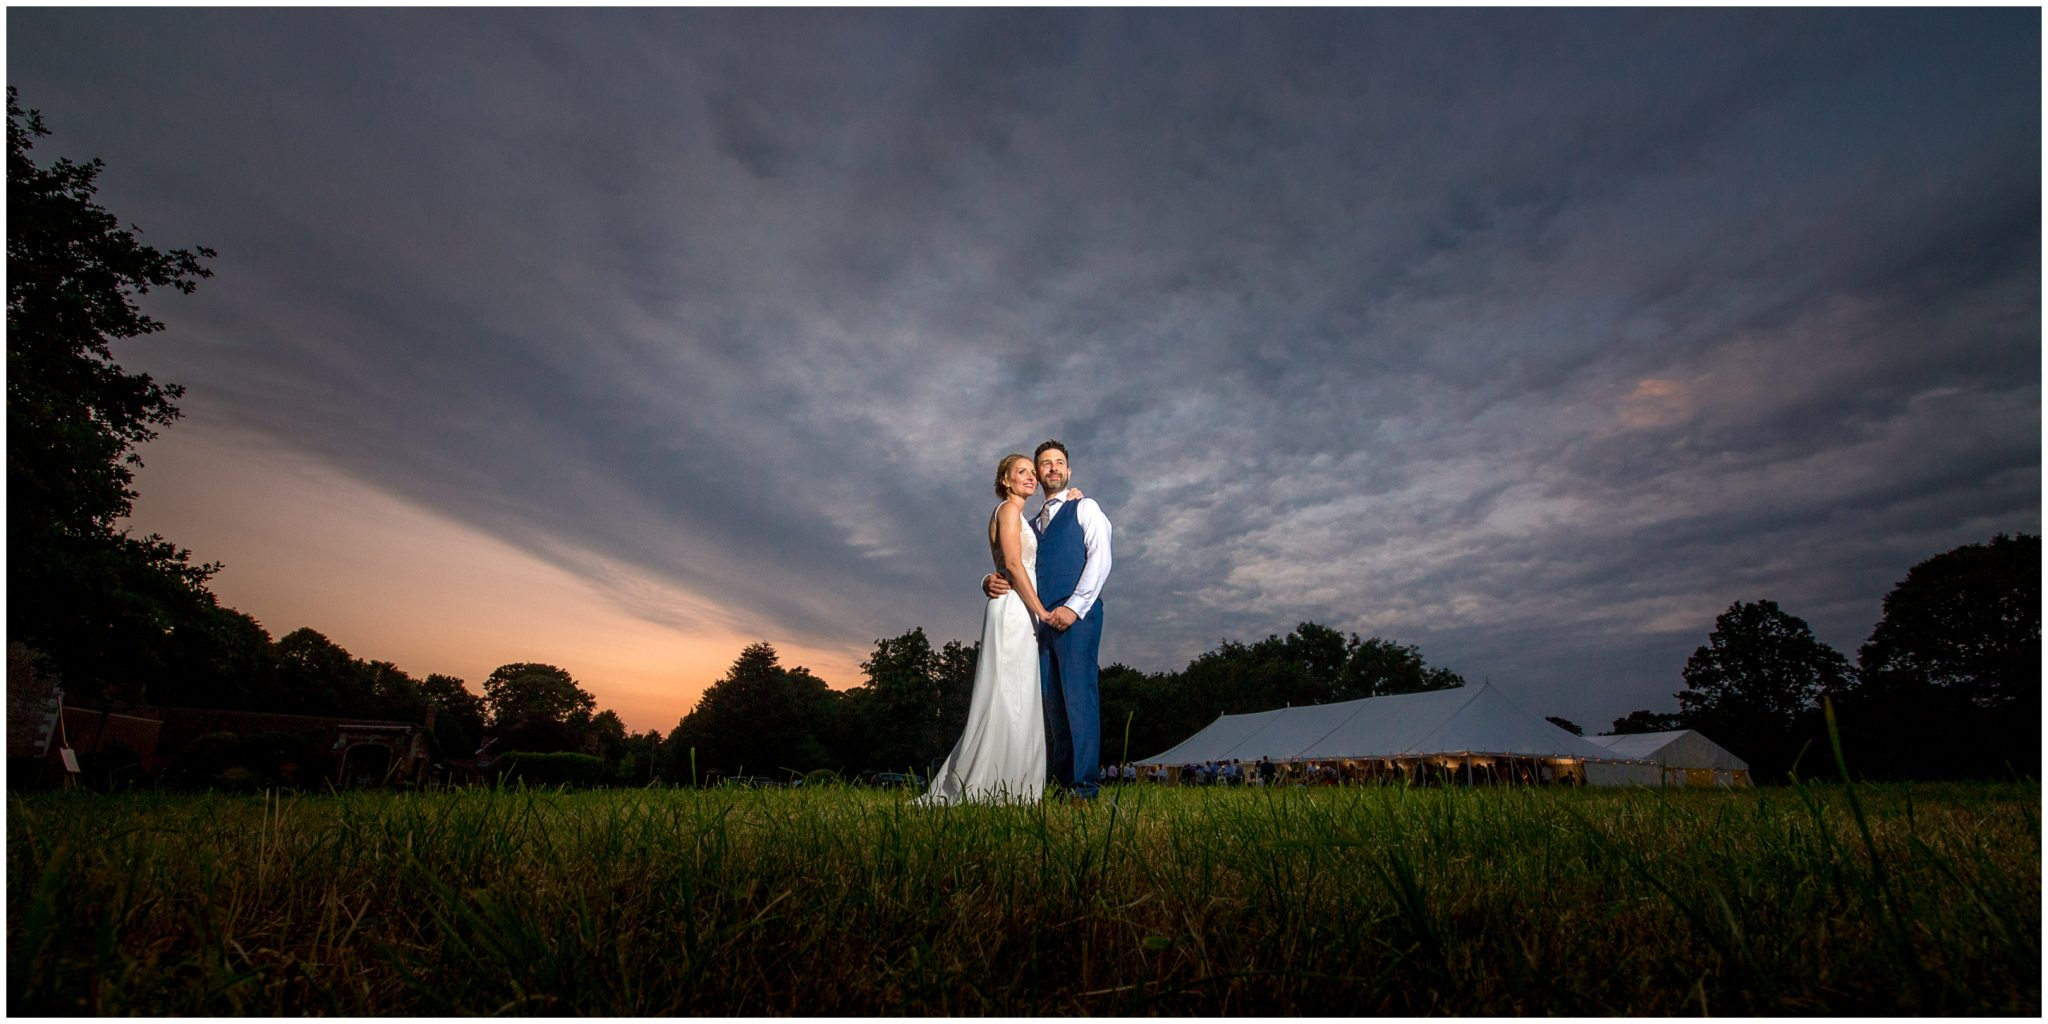 Bride and groom portrait at sunset